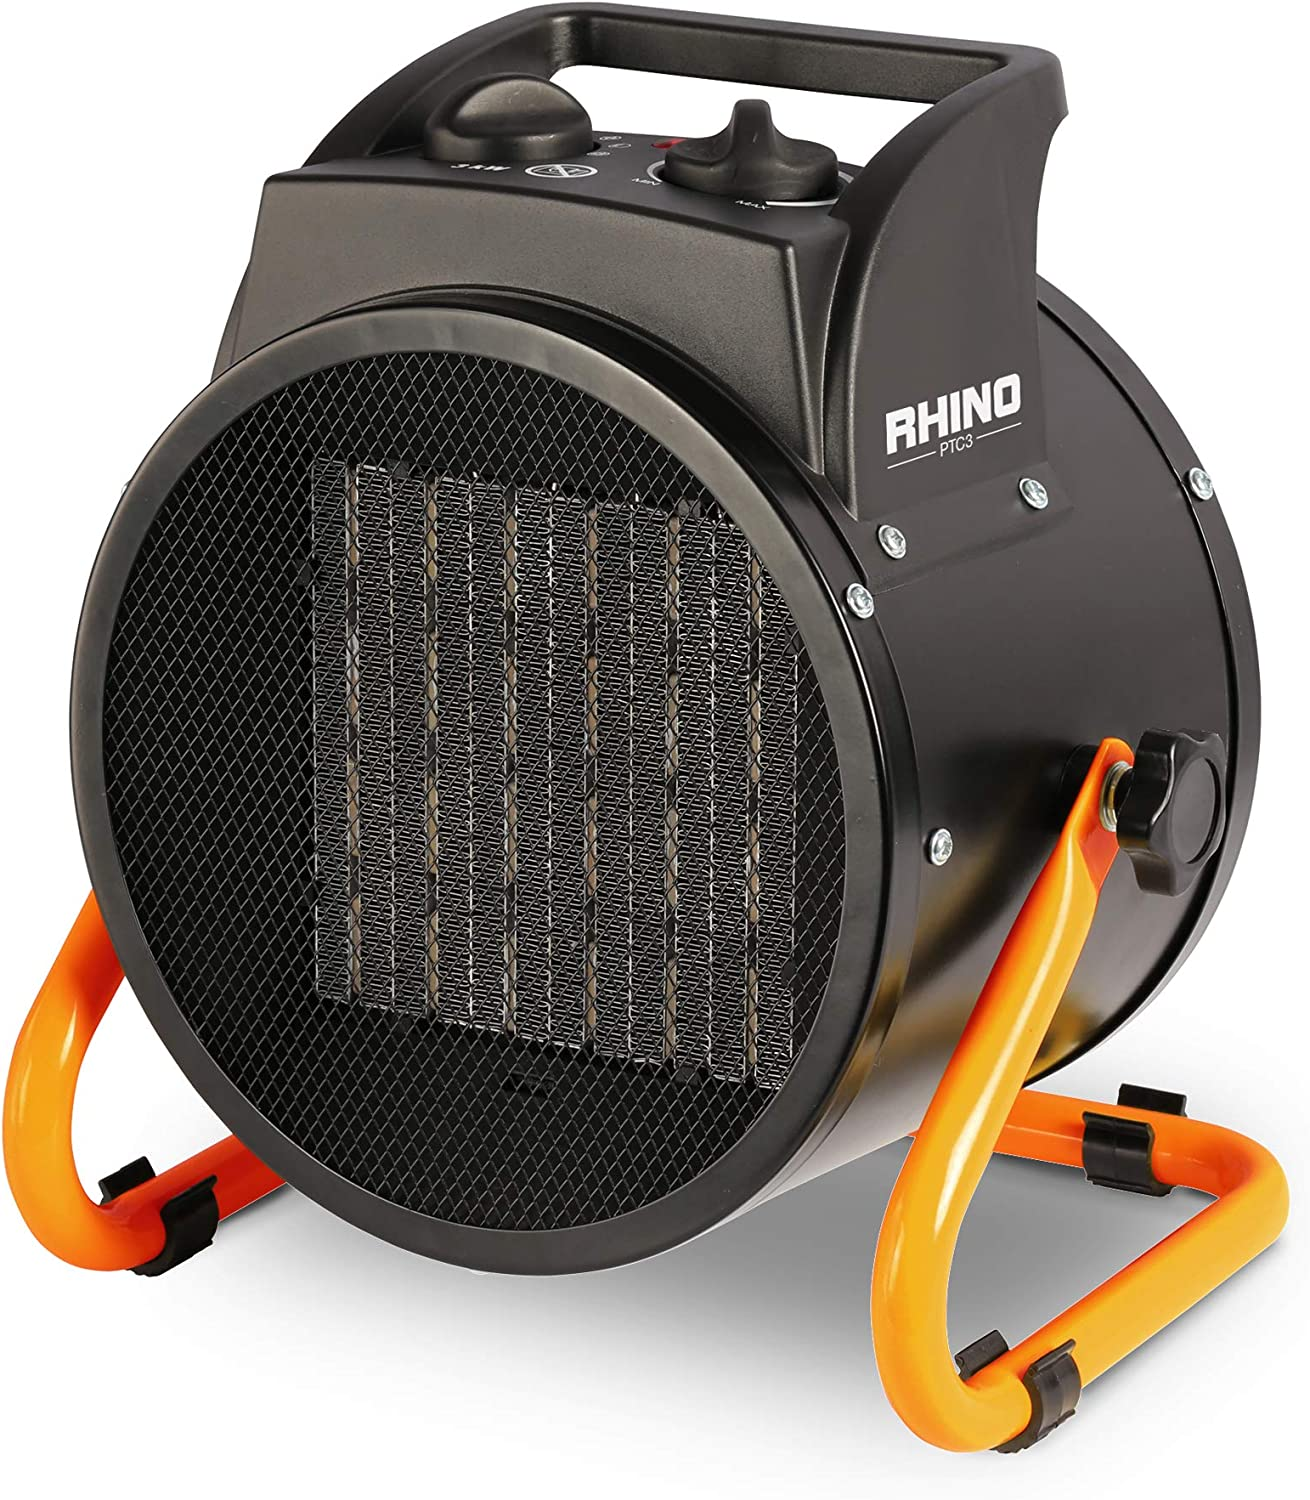 Rhino 3KW Industrial 240V Box Fan Air